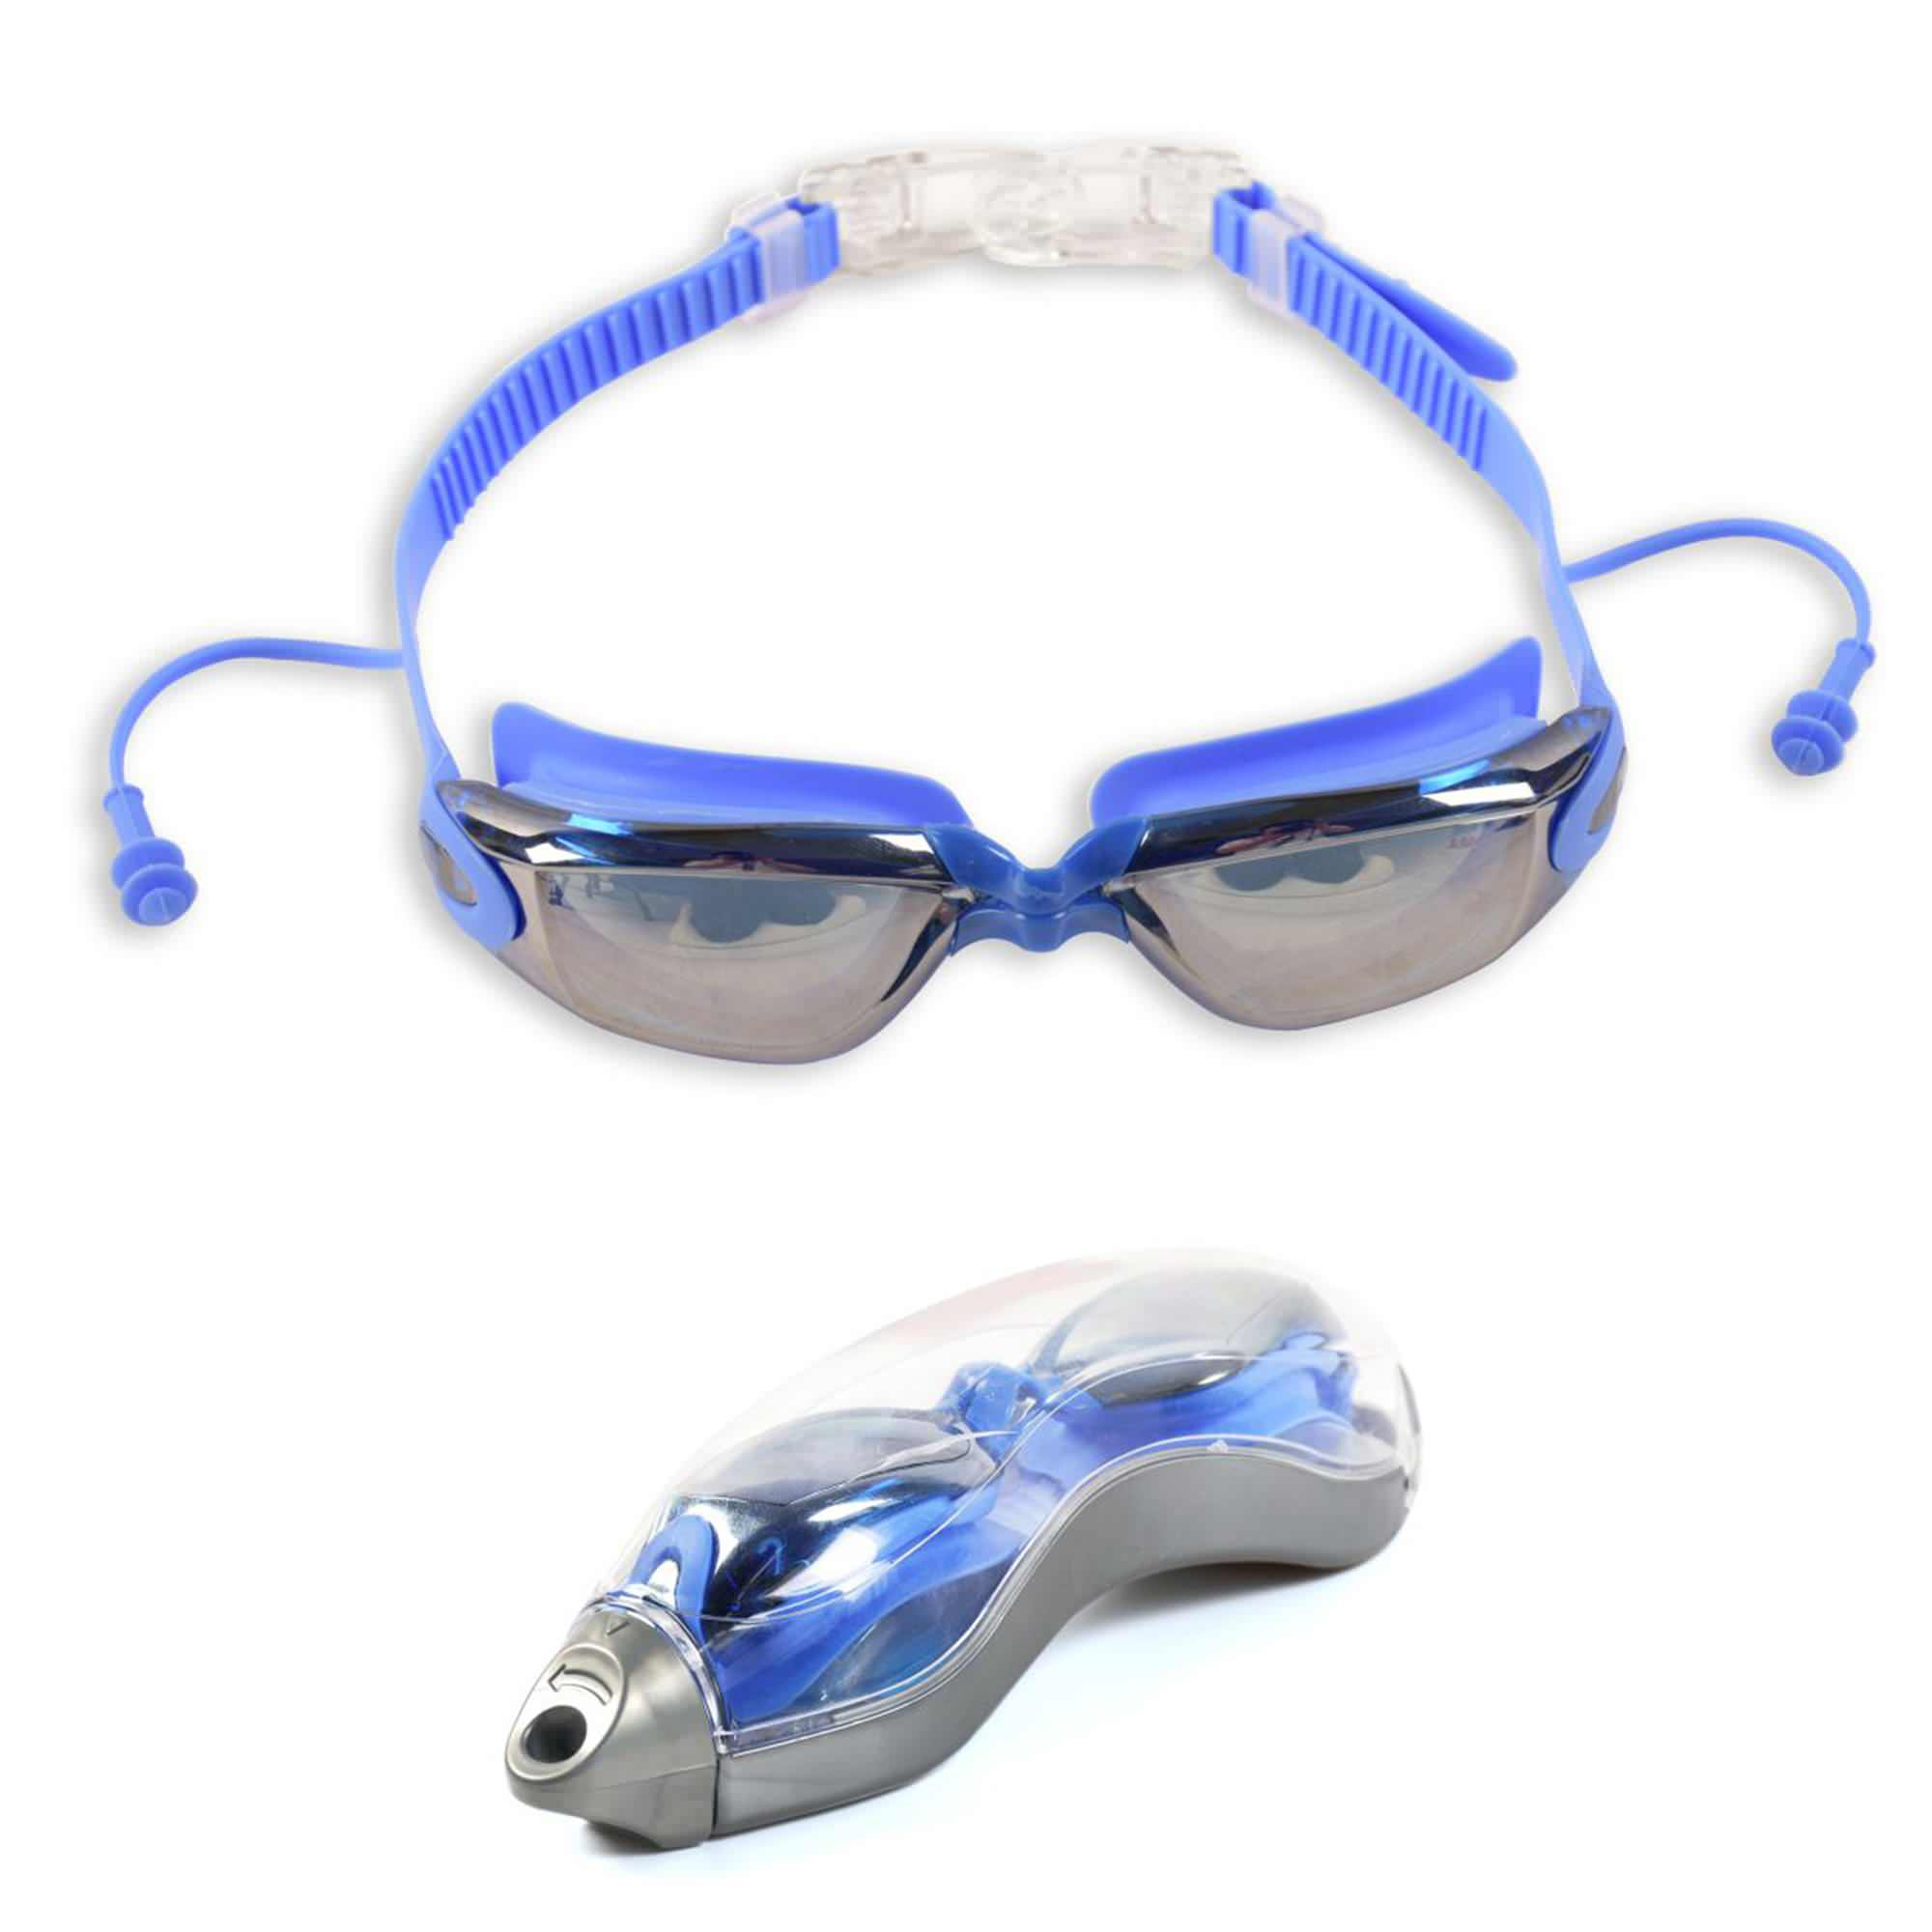 Adult Swim Goggles - No Leaking,Anti- Fog,UV Protection Swimming Goggles With Free Protective Case and Ear Plug,Black